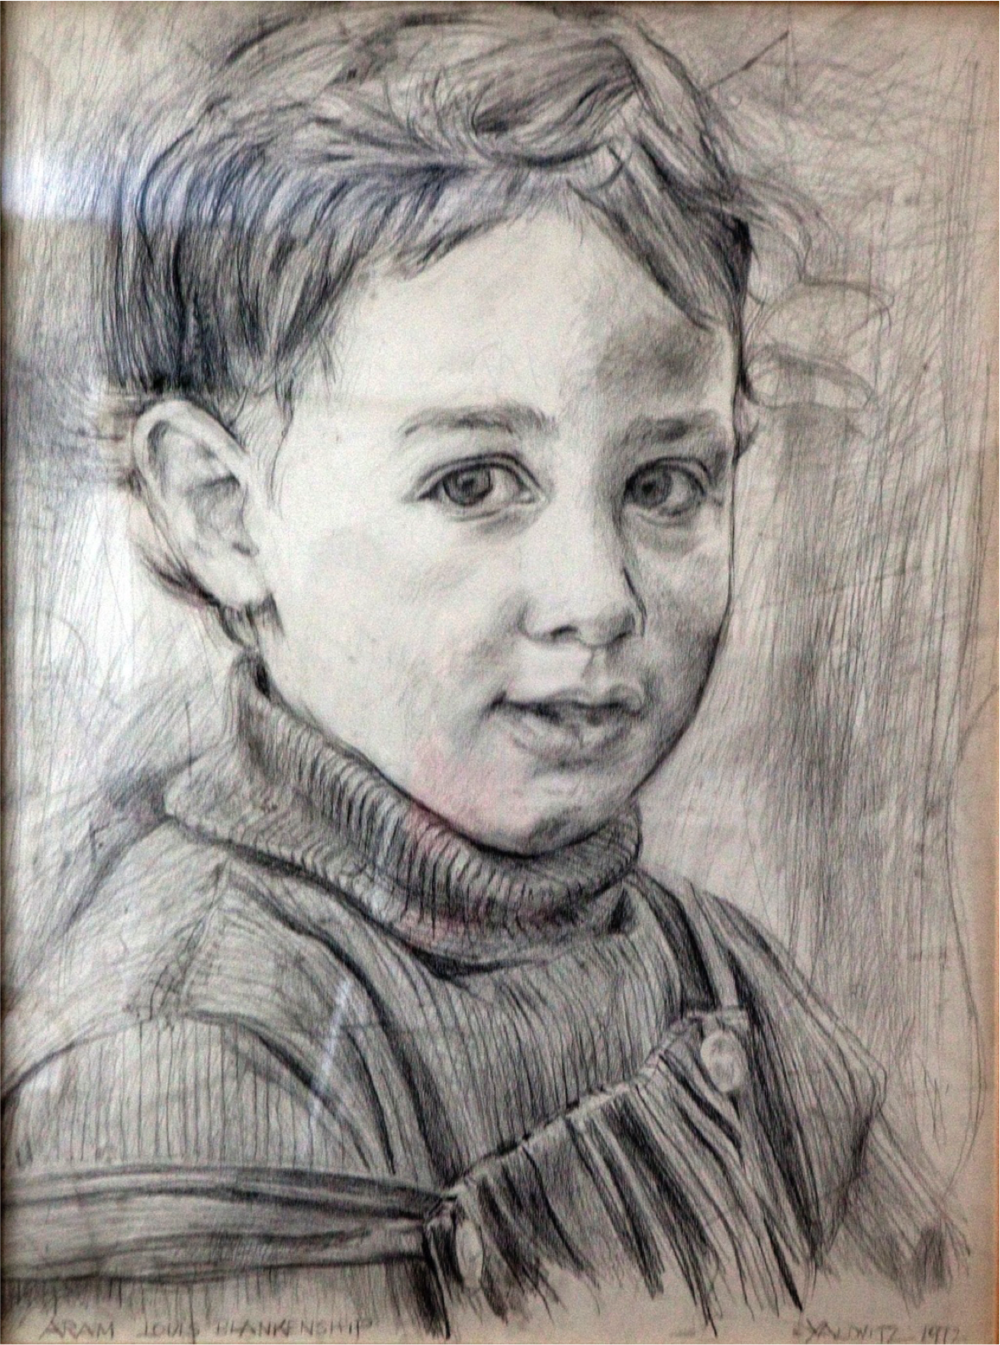 18_child_portrait.png